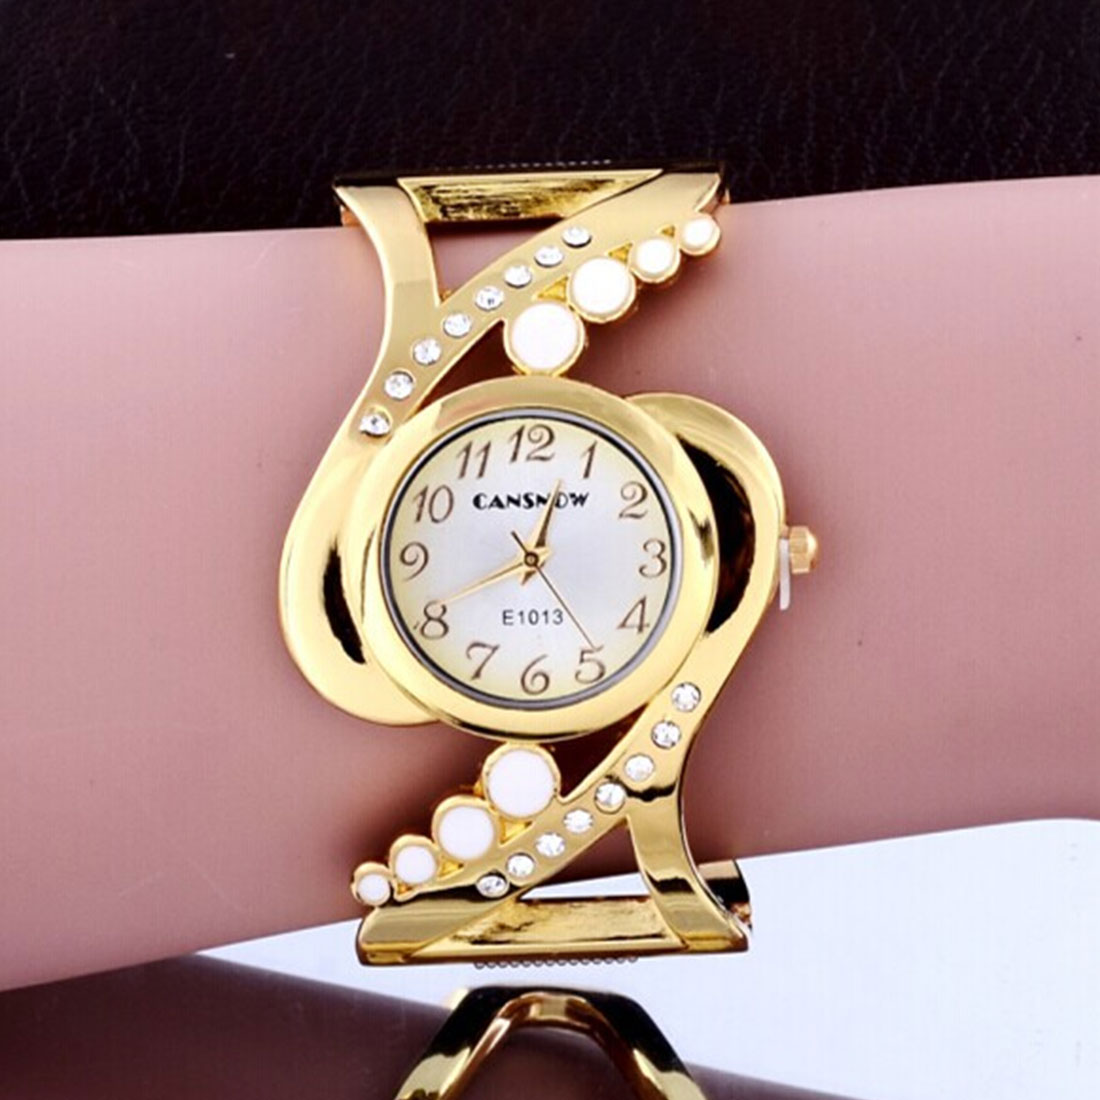 2017 New Bracelet Watches Brand Crystal Luxury Ladies Wristwatch Fashion Watch Women Dress Popular Designer Quartz Watch mance ladies brand designer watches luxury watch women 2016 crystal rivet bracelet braided winding wrap quartz watches quality